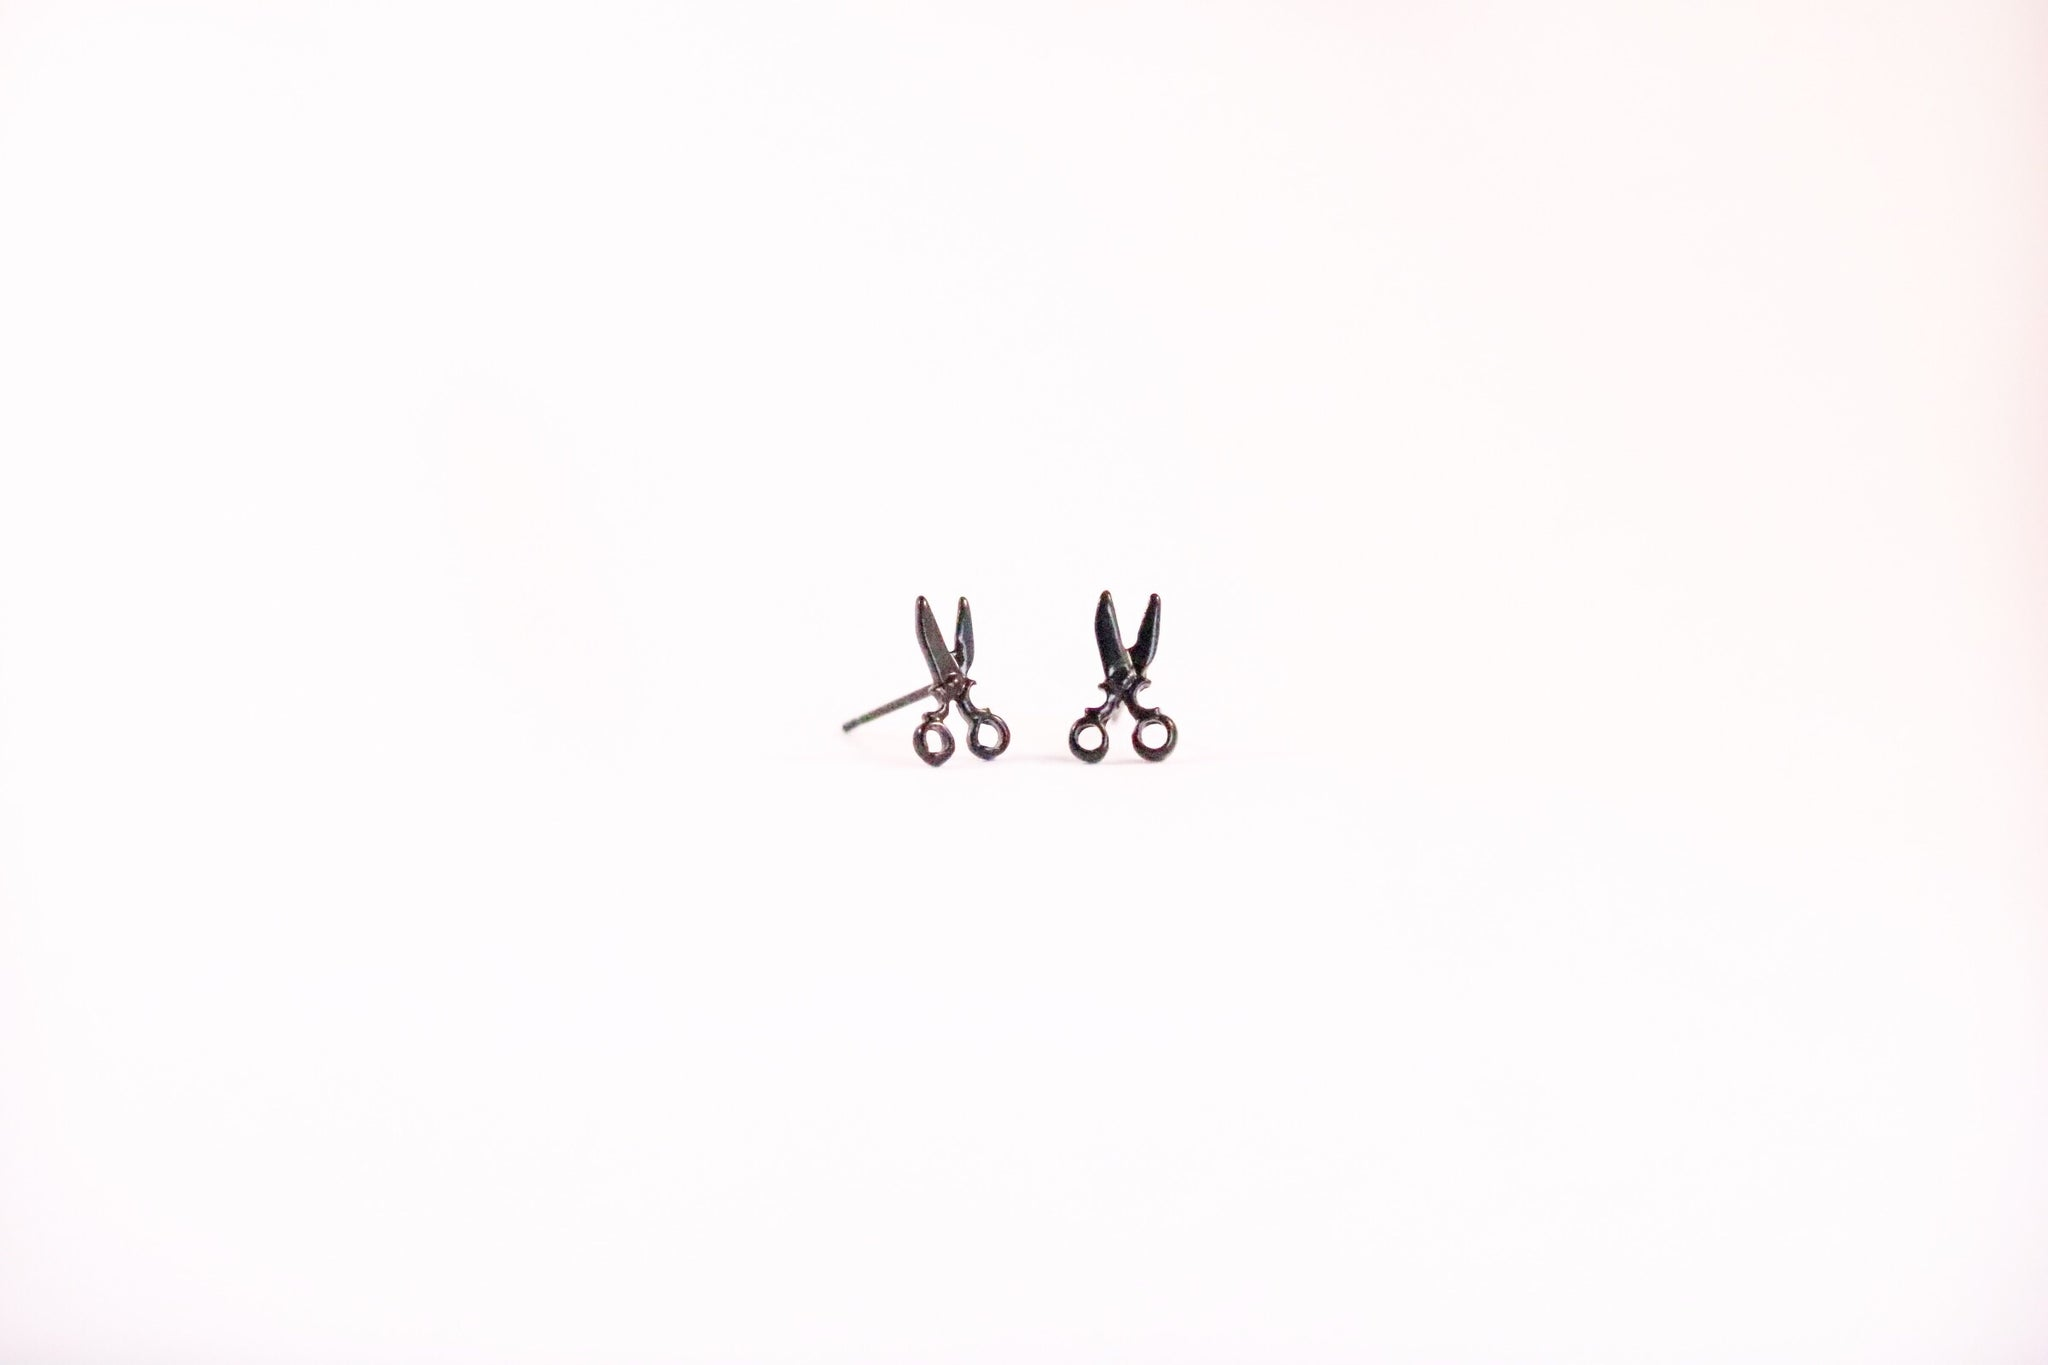 Small Black Earrings Scissors, Musical Note, Fish